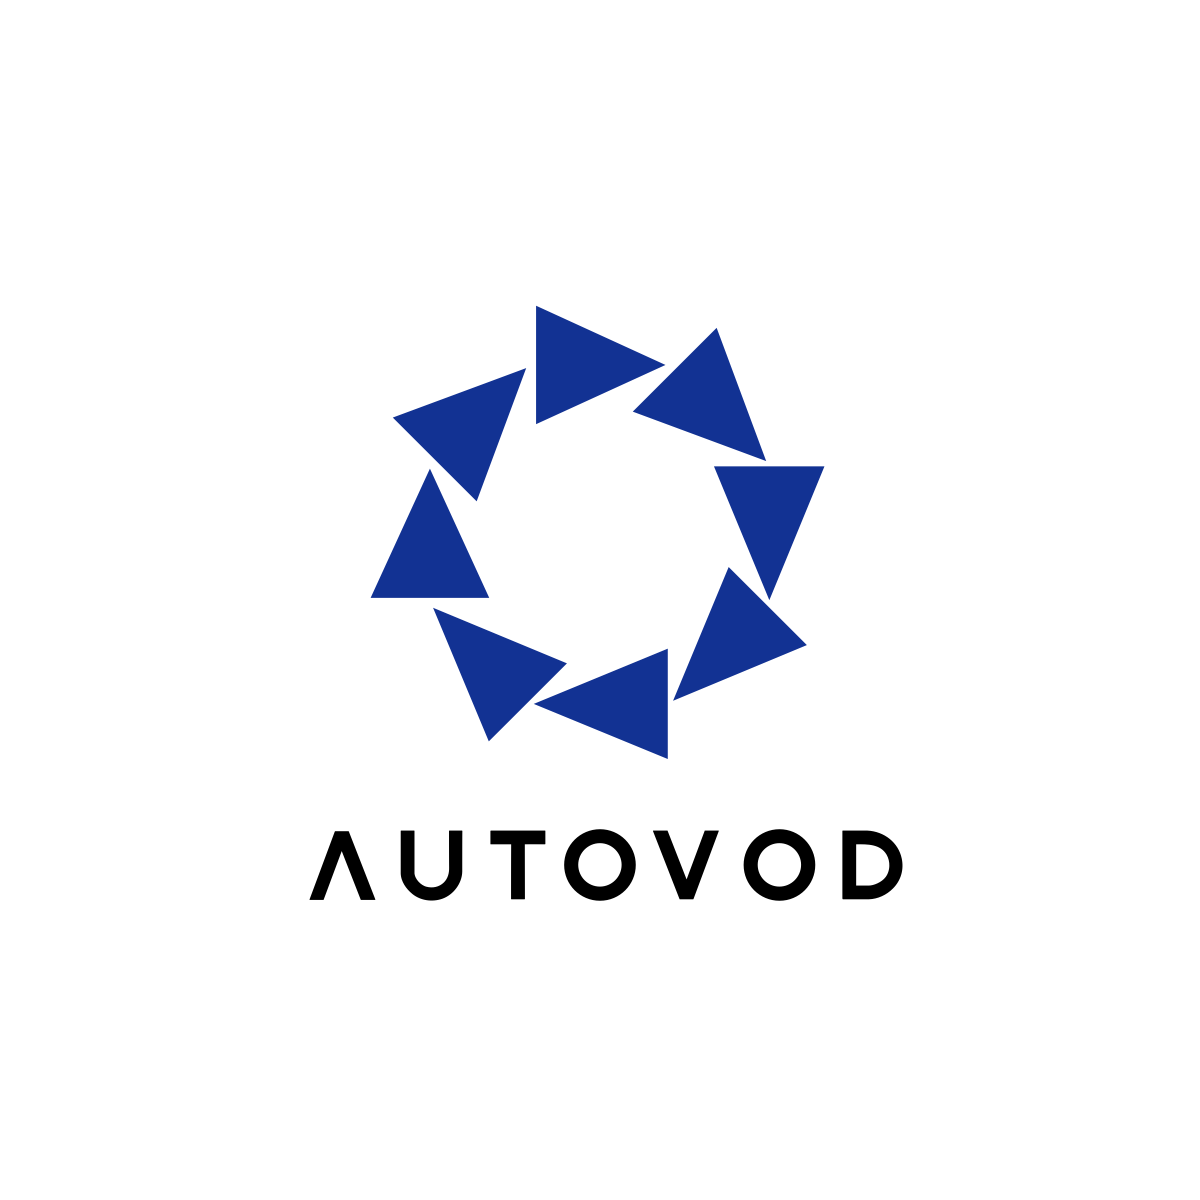 autovod.001.png